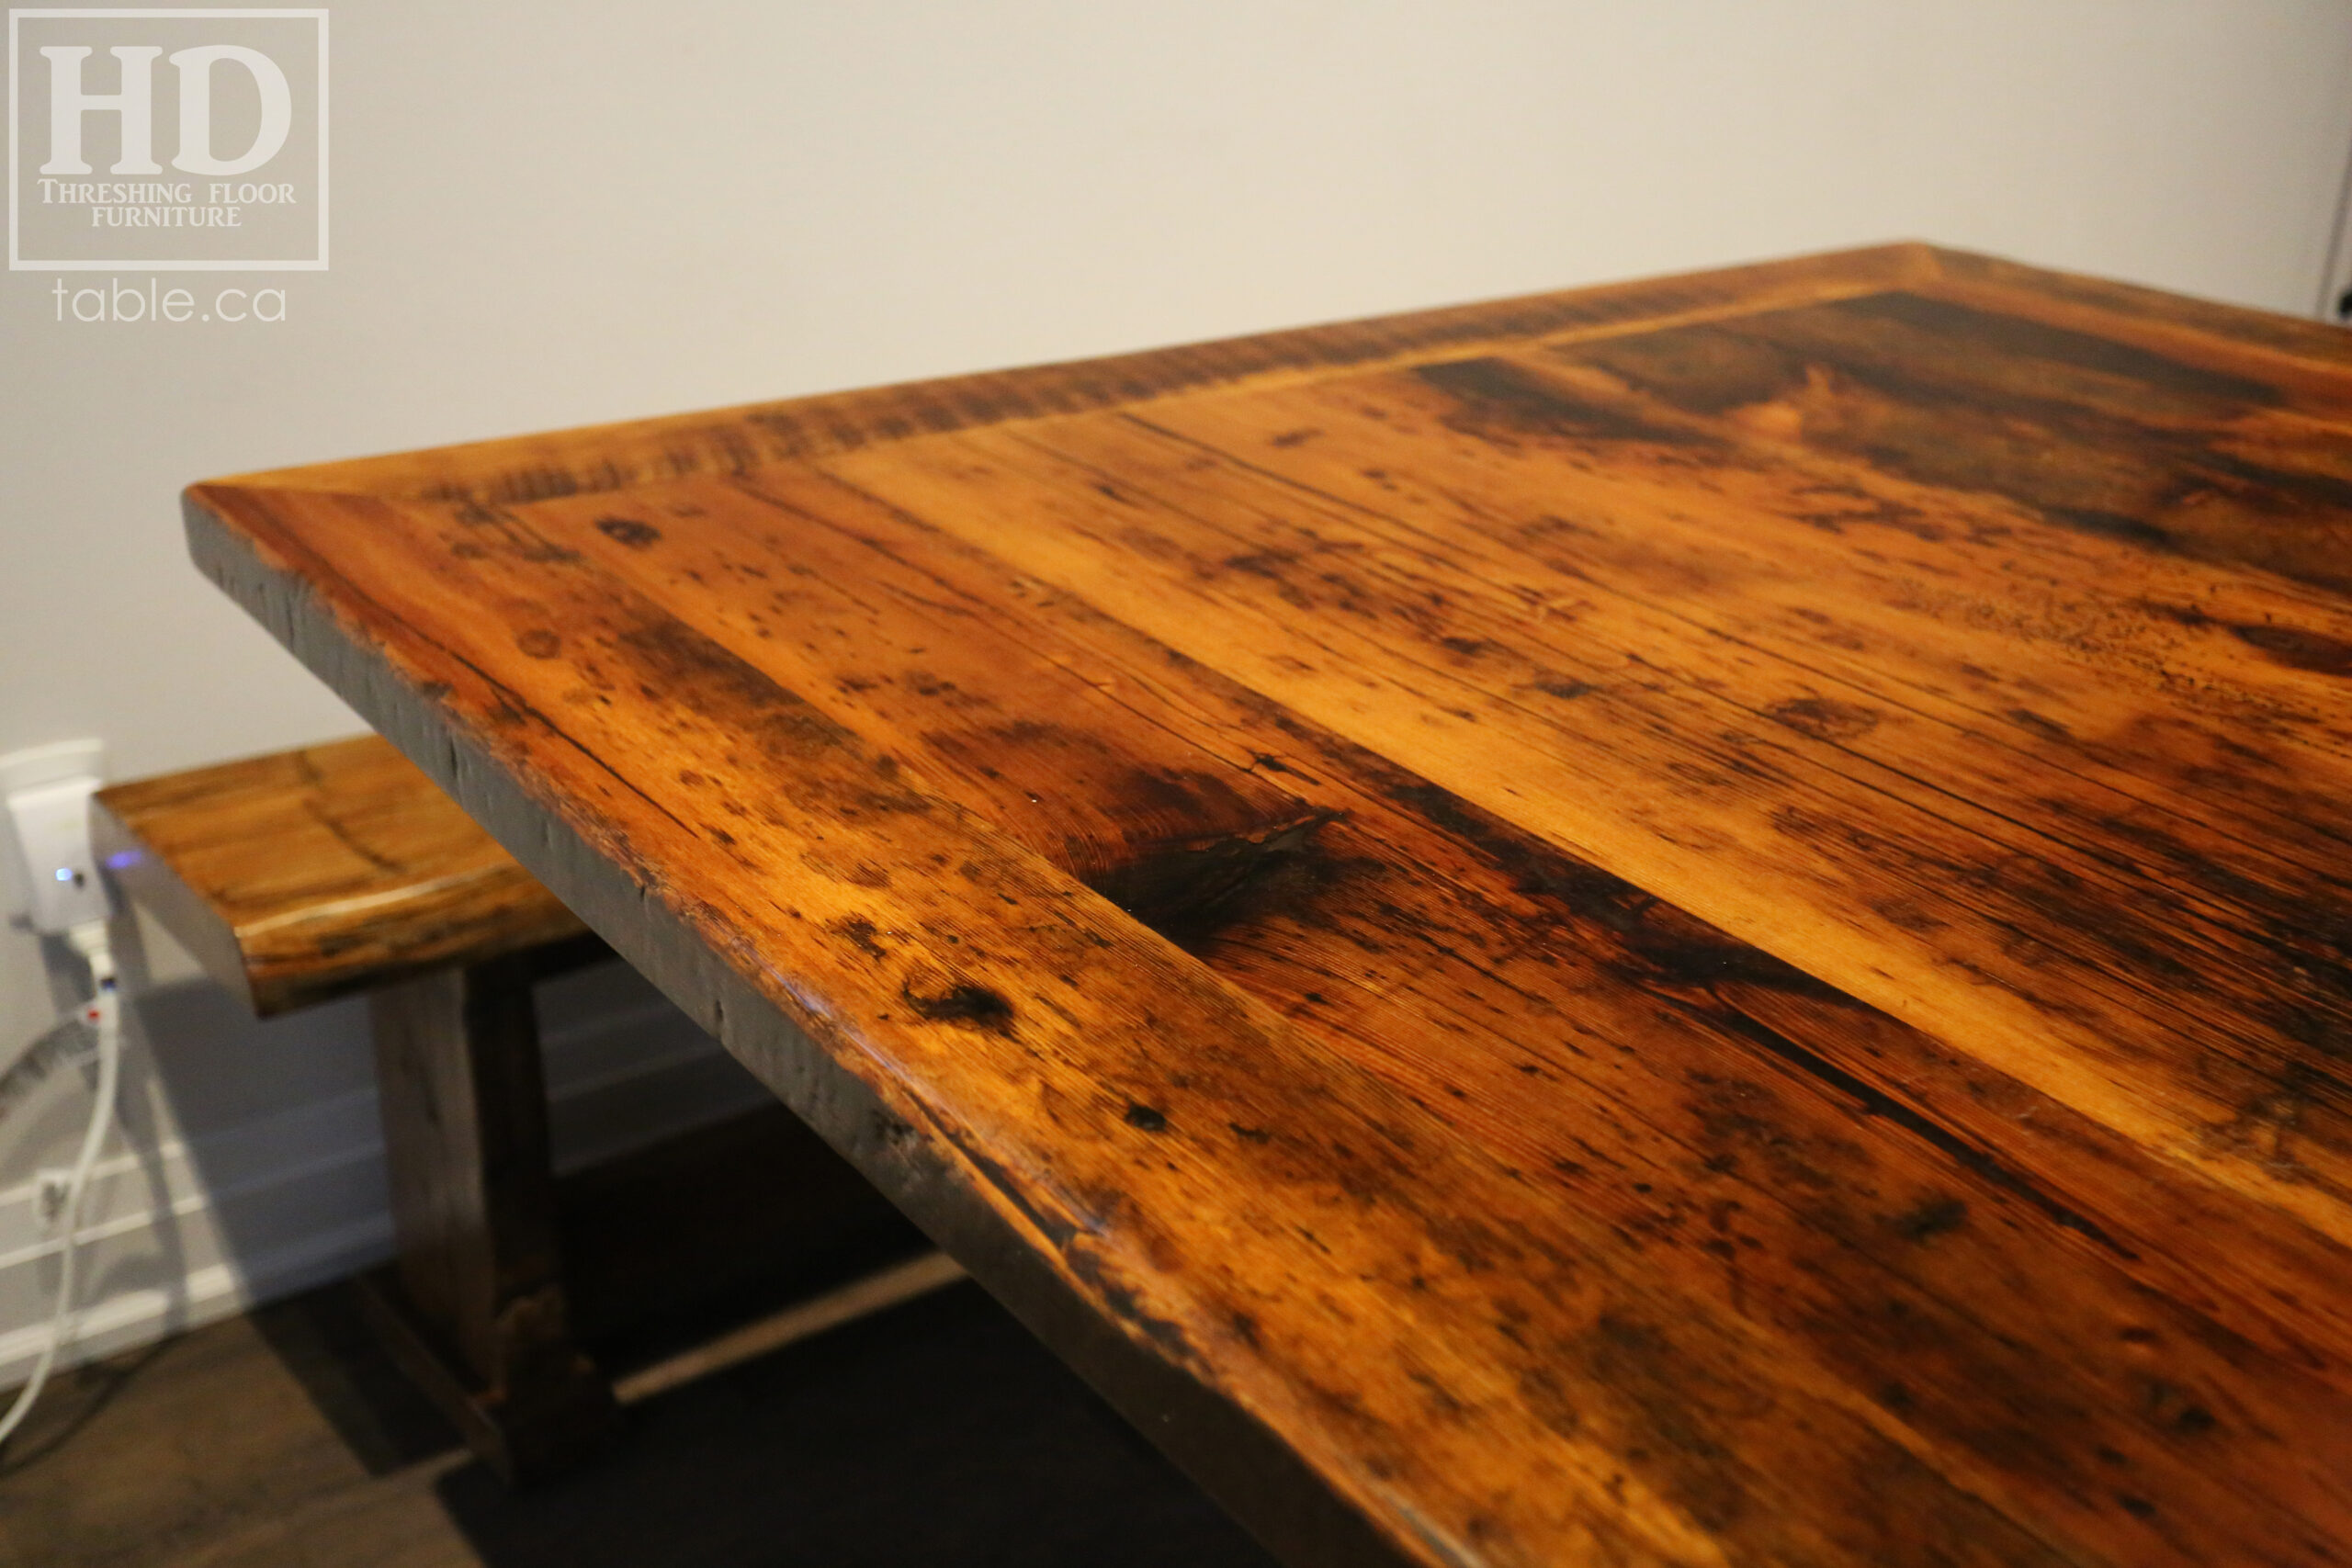 """54"""" x 54"""" Square Reclaimed Wood Table we made for a Toronto home - X Shaped Base - Hemlock Threshing Floor 2"""" Construction - Original edges & distressing maintained - Premium epoxy + satin polyurethane finish - www.table.ca"""